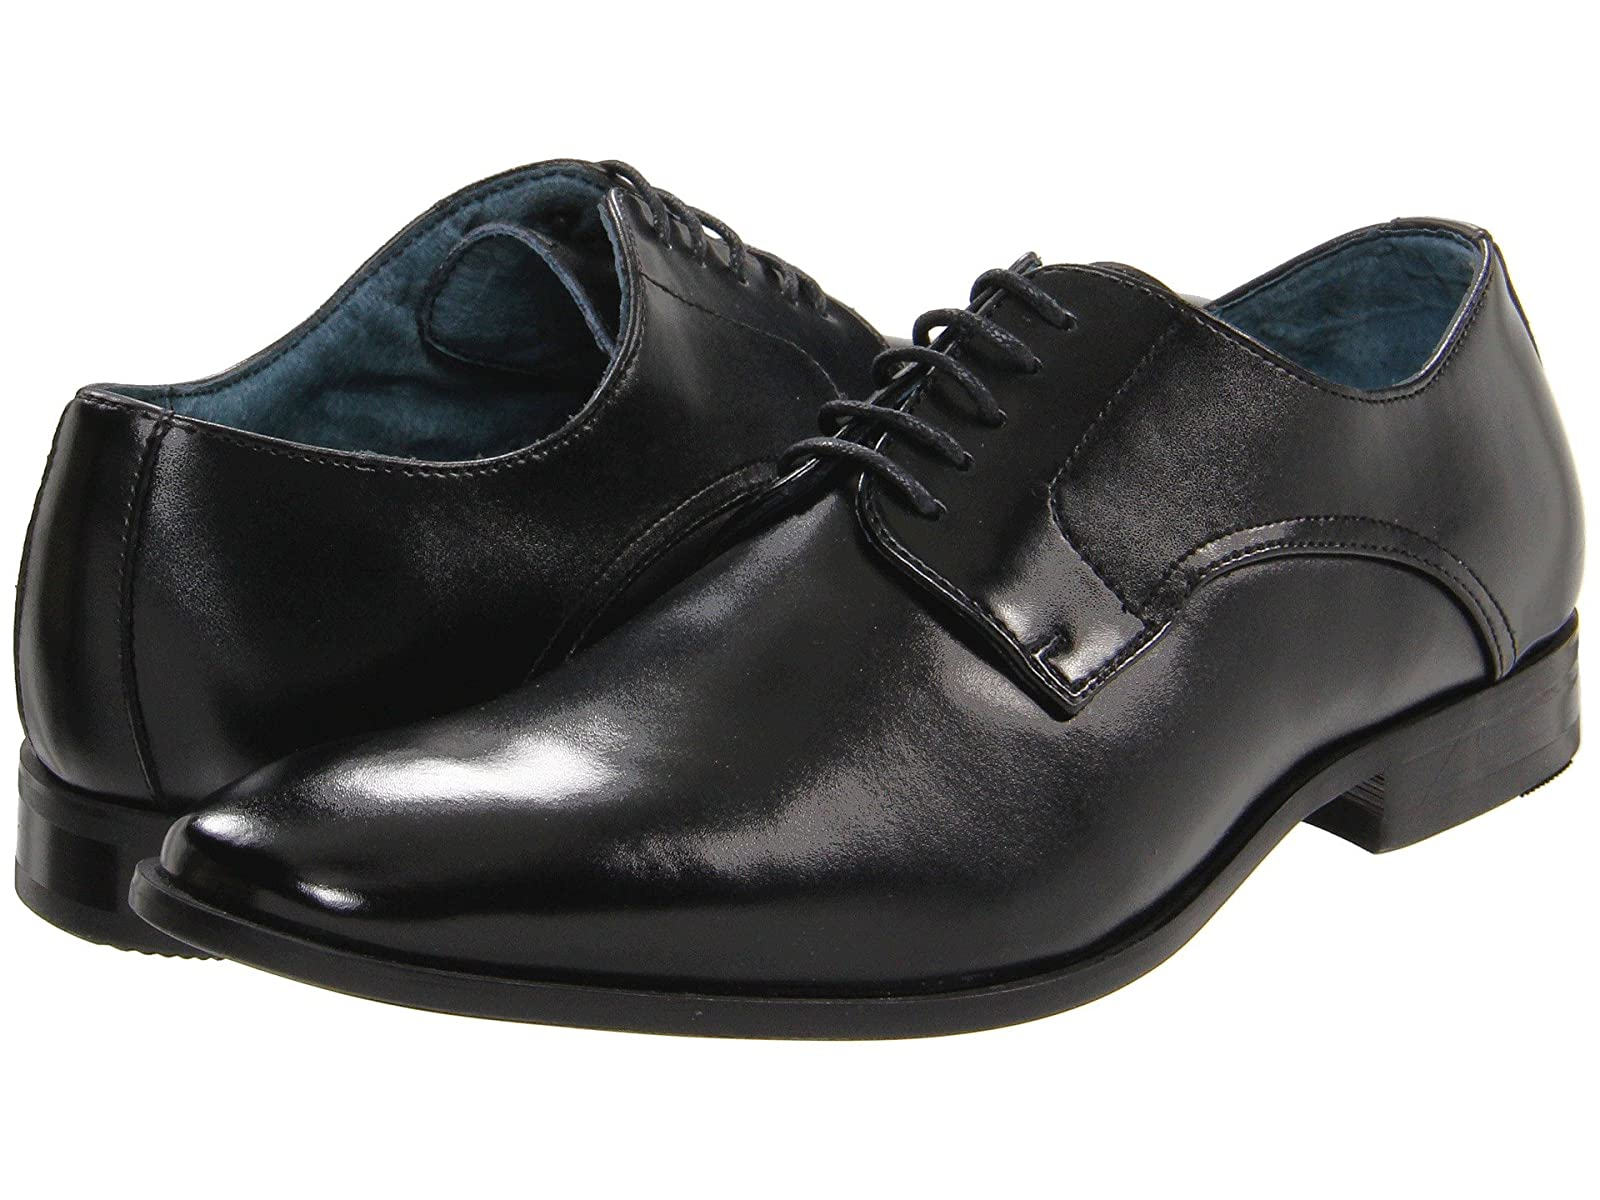 Giorgio Brutini WebsterAtmospheric grades have affordable shoes